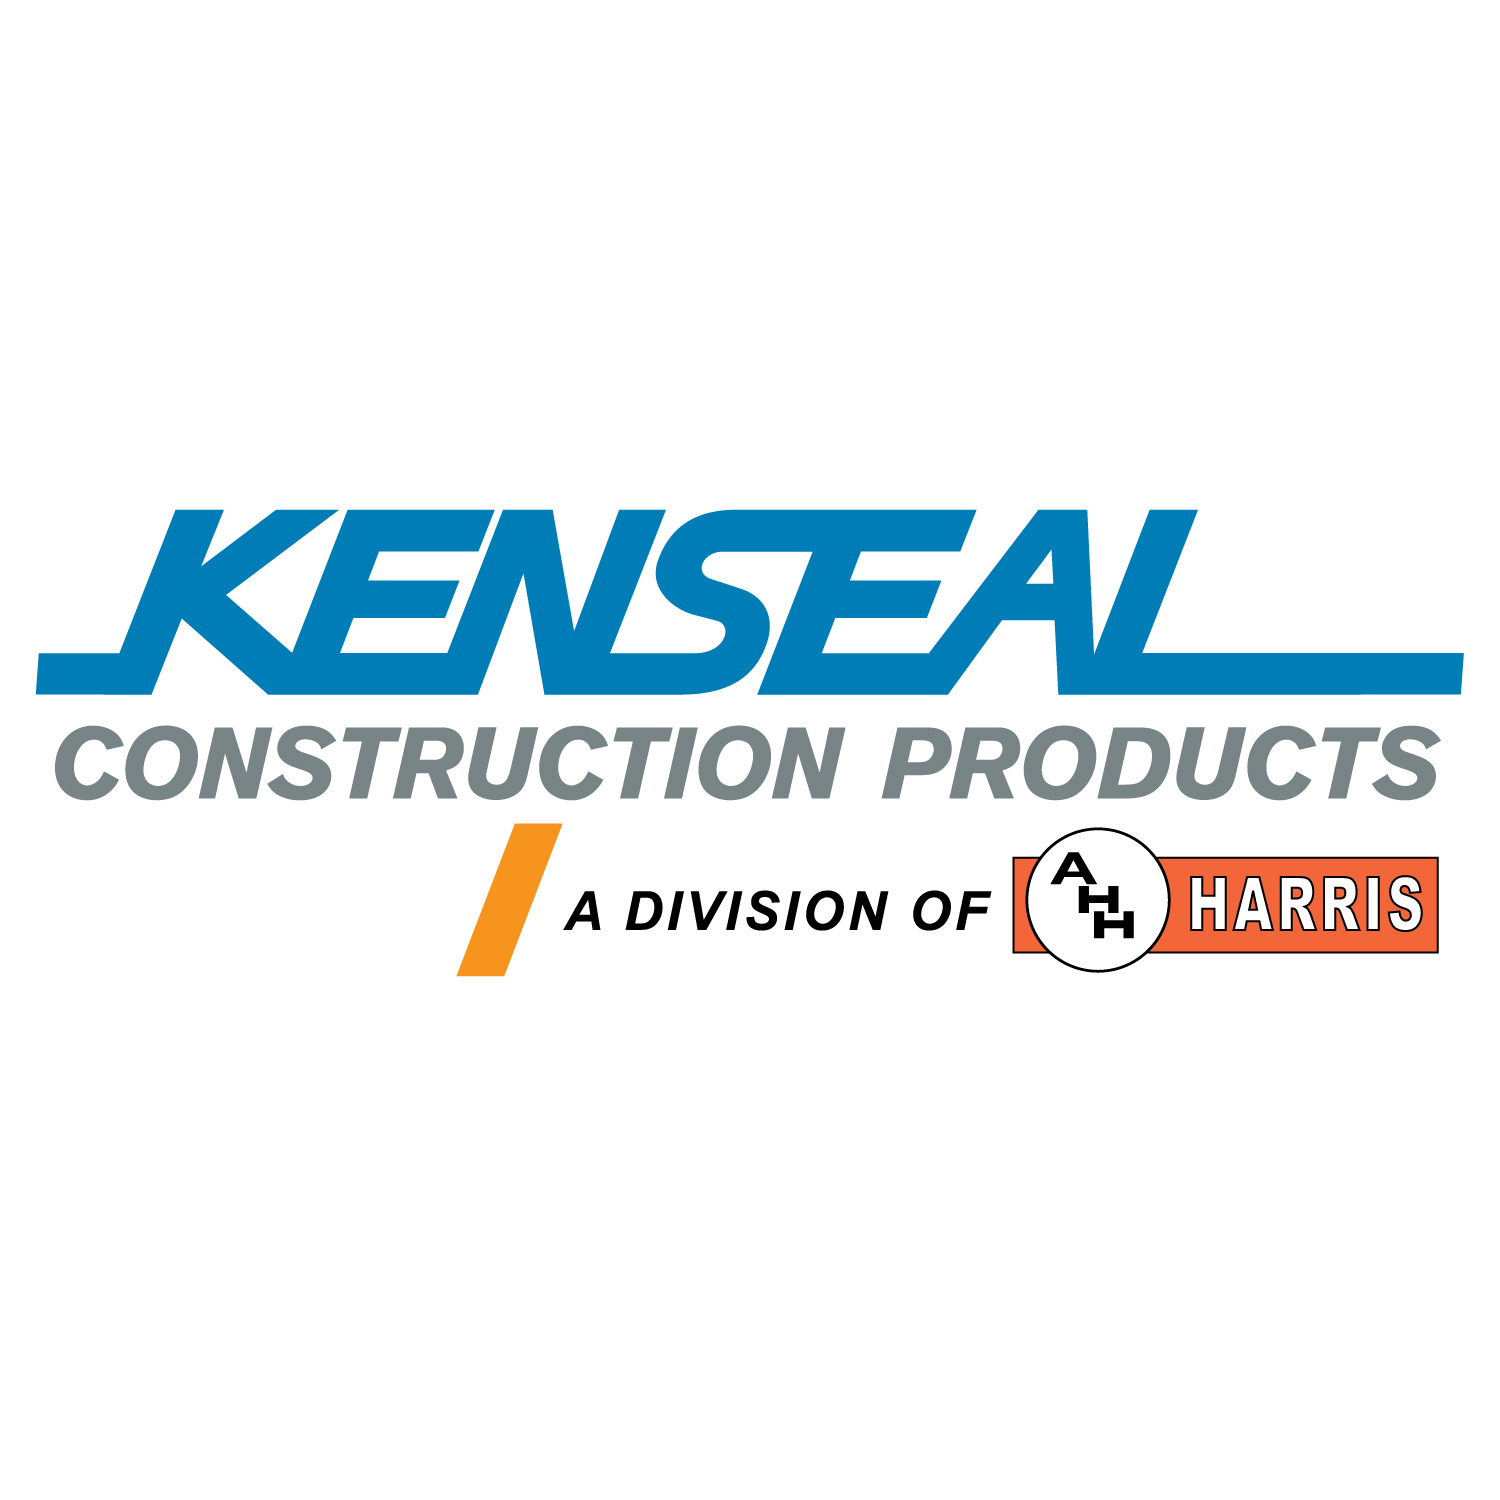 Kenseal Construction Products